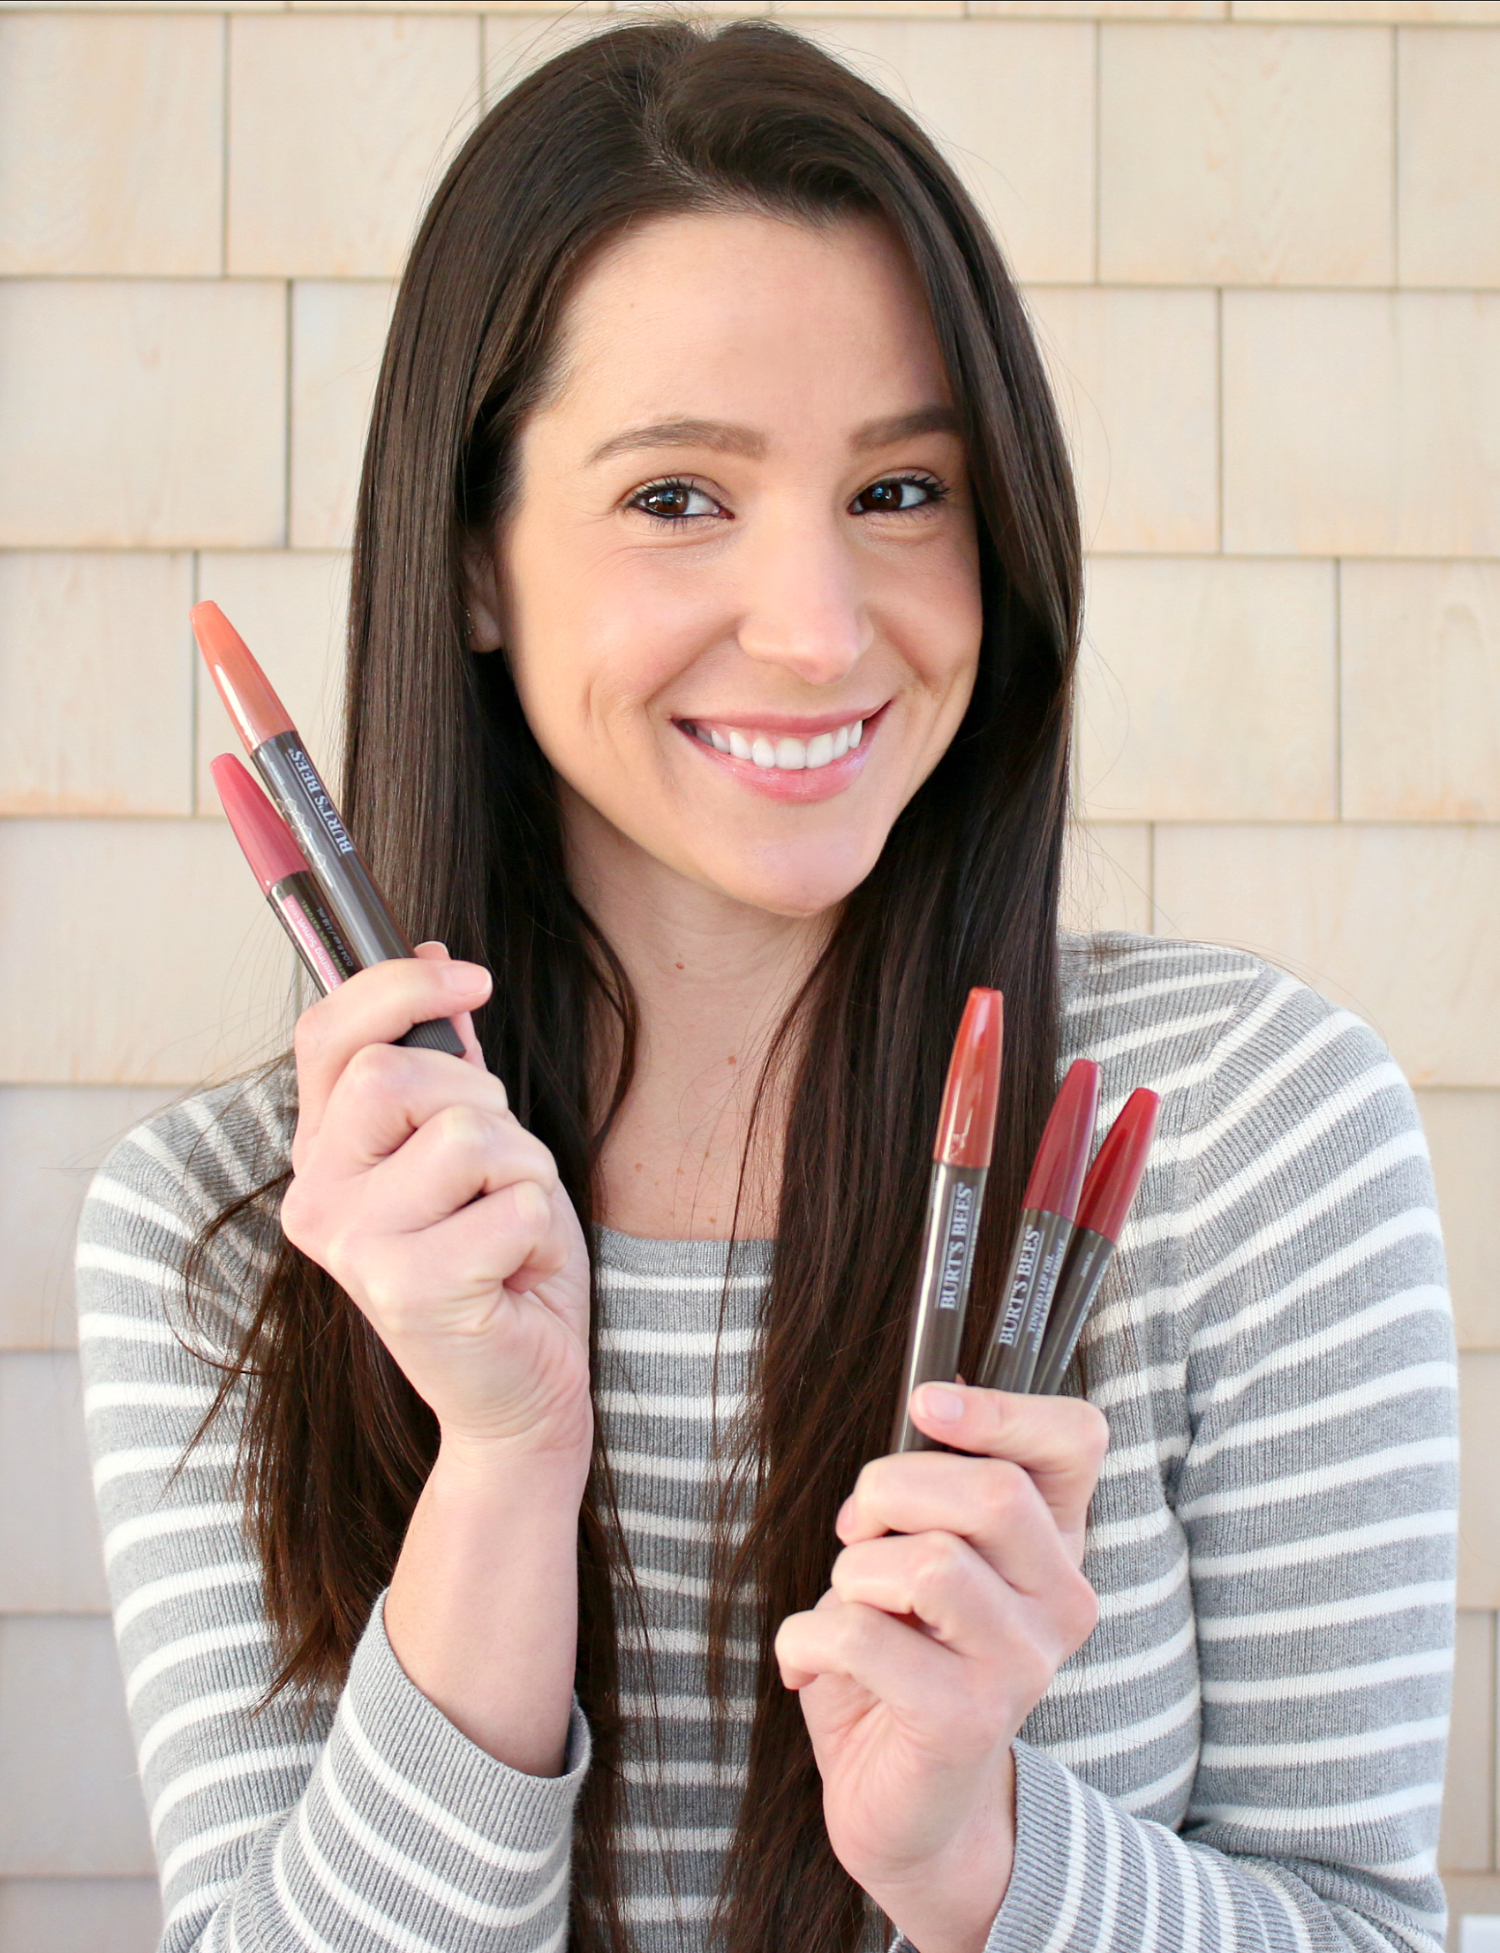 Burt's Bees Tinted Lip Oil Swatches